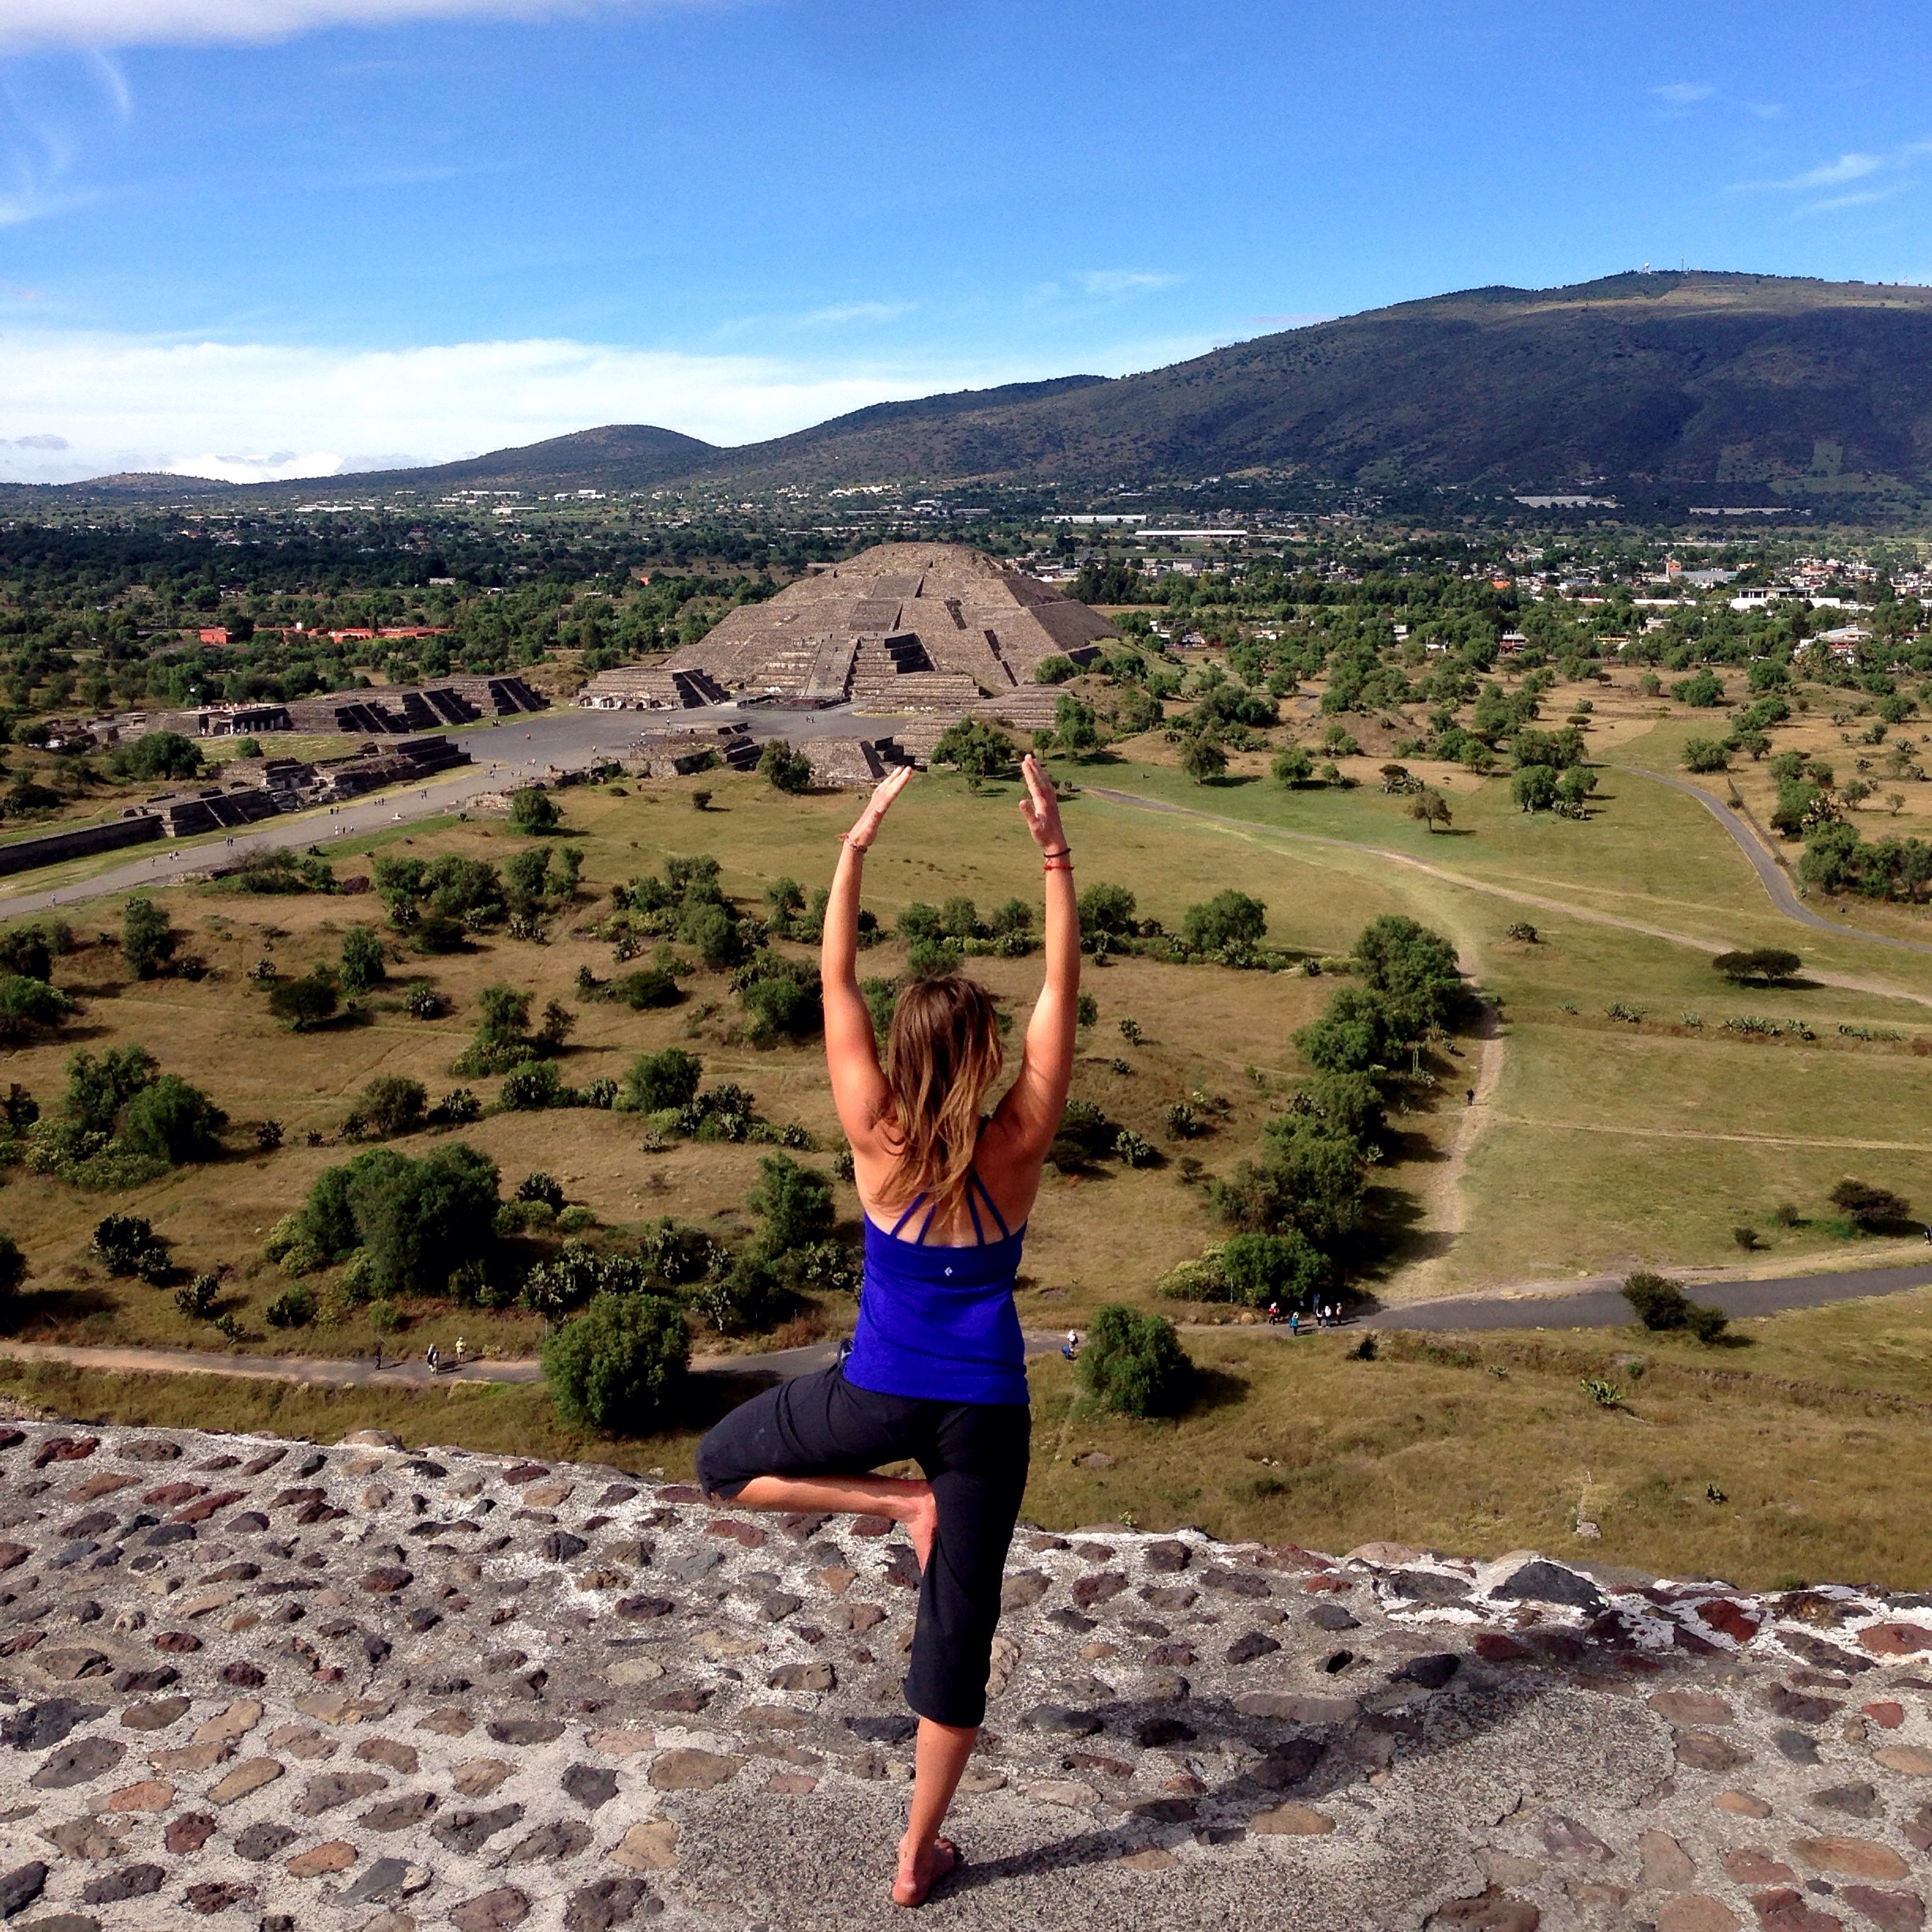 Renee in Mexico. Photo by Isaac Fleming.